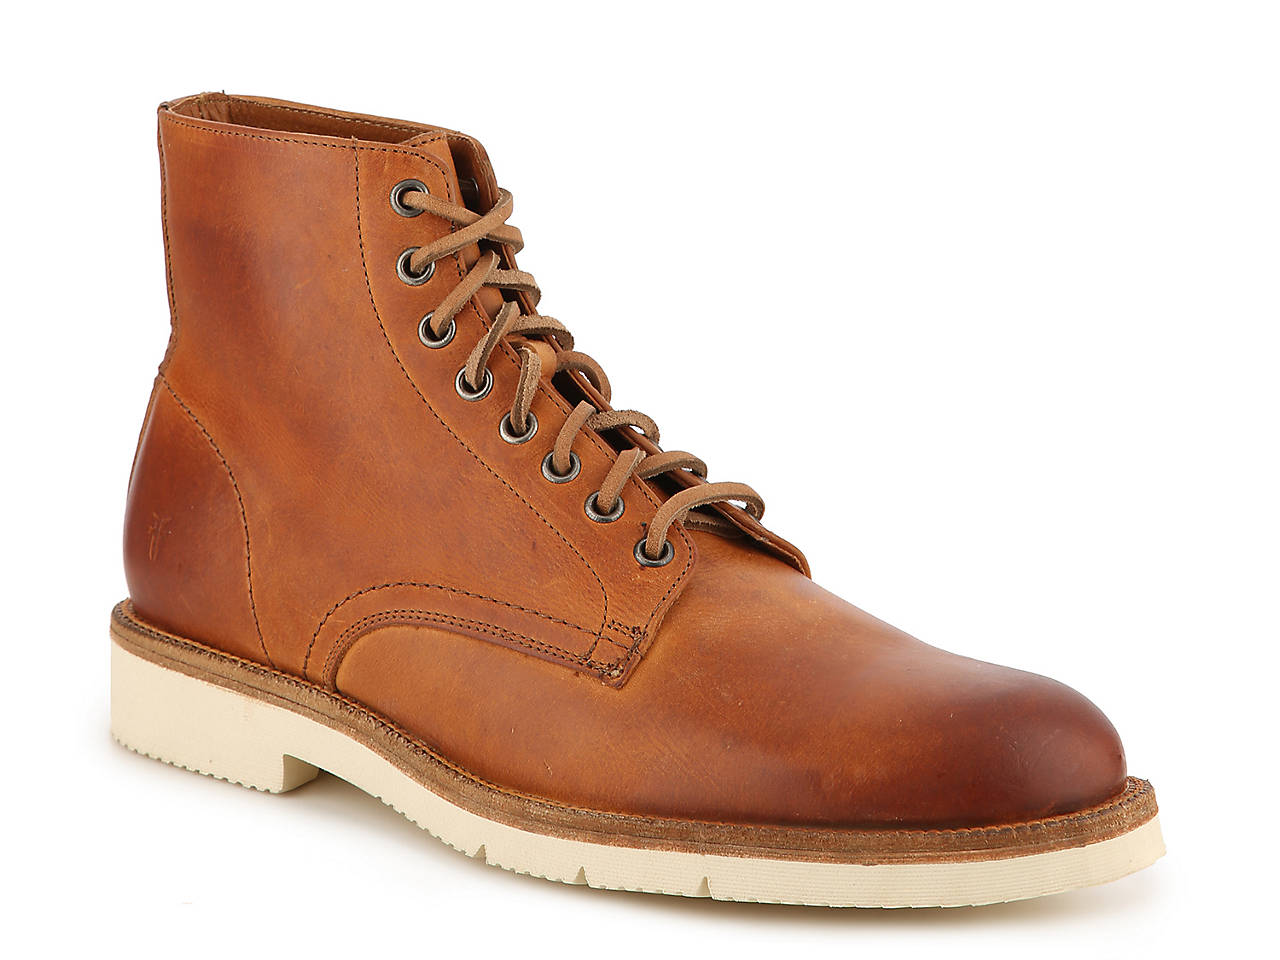 Sale New Styles Frye Eric Lace-Up Boot Manchester Online Discount Authentic Outlet Manchester Great Sale Bk0cikYkV